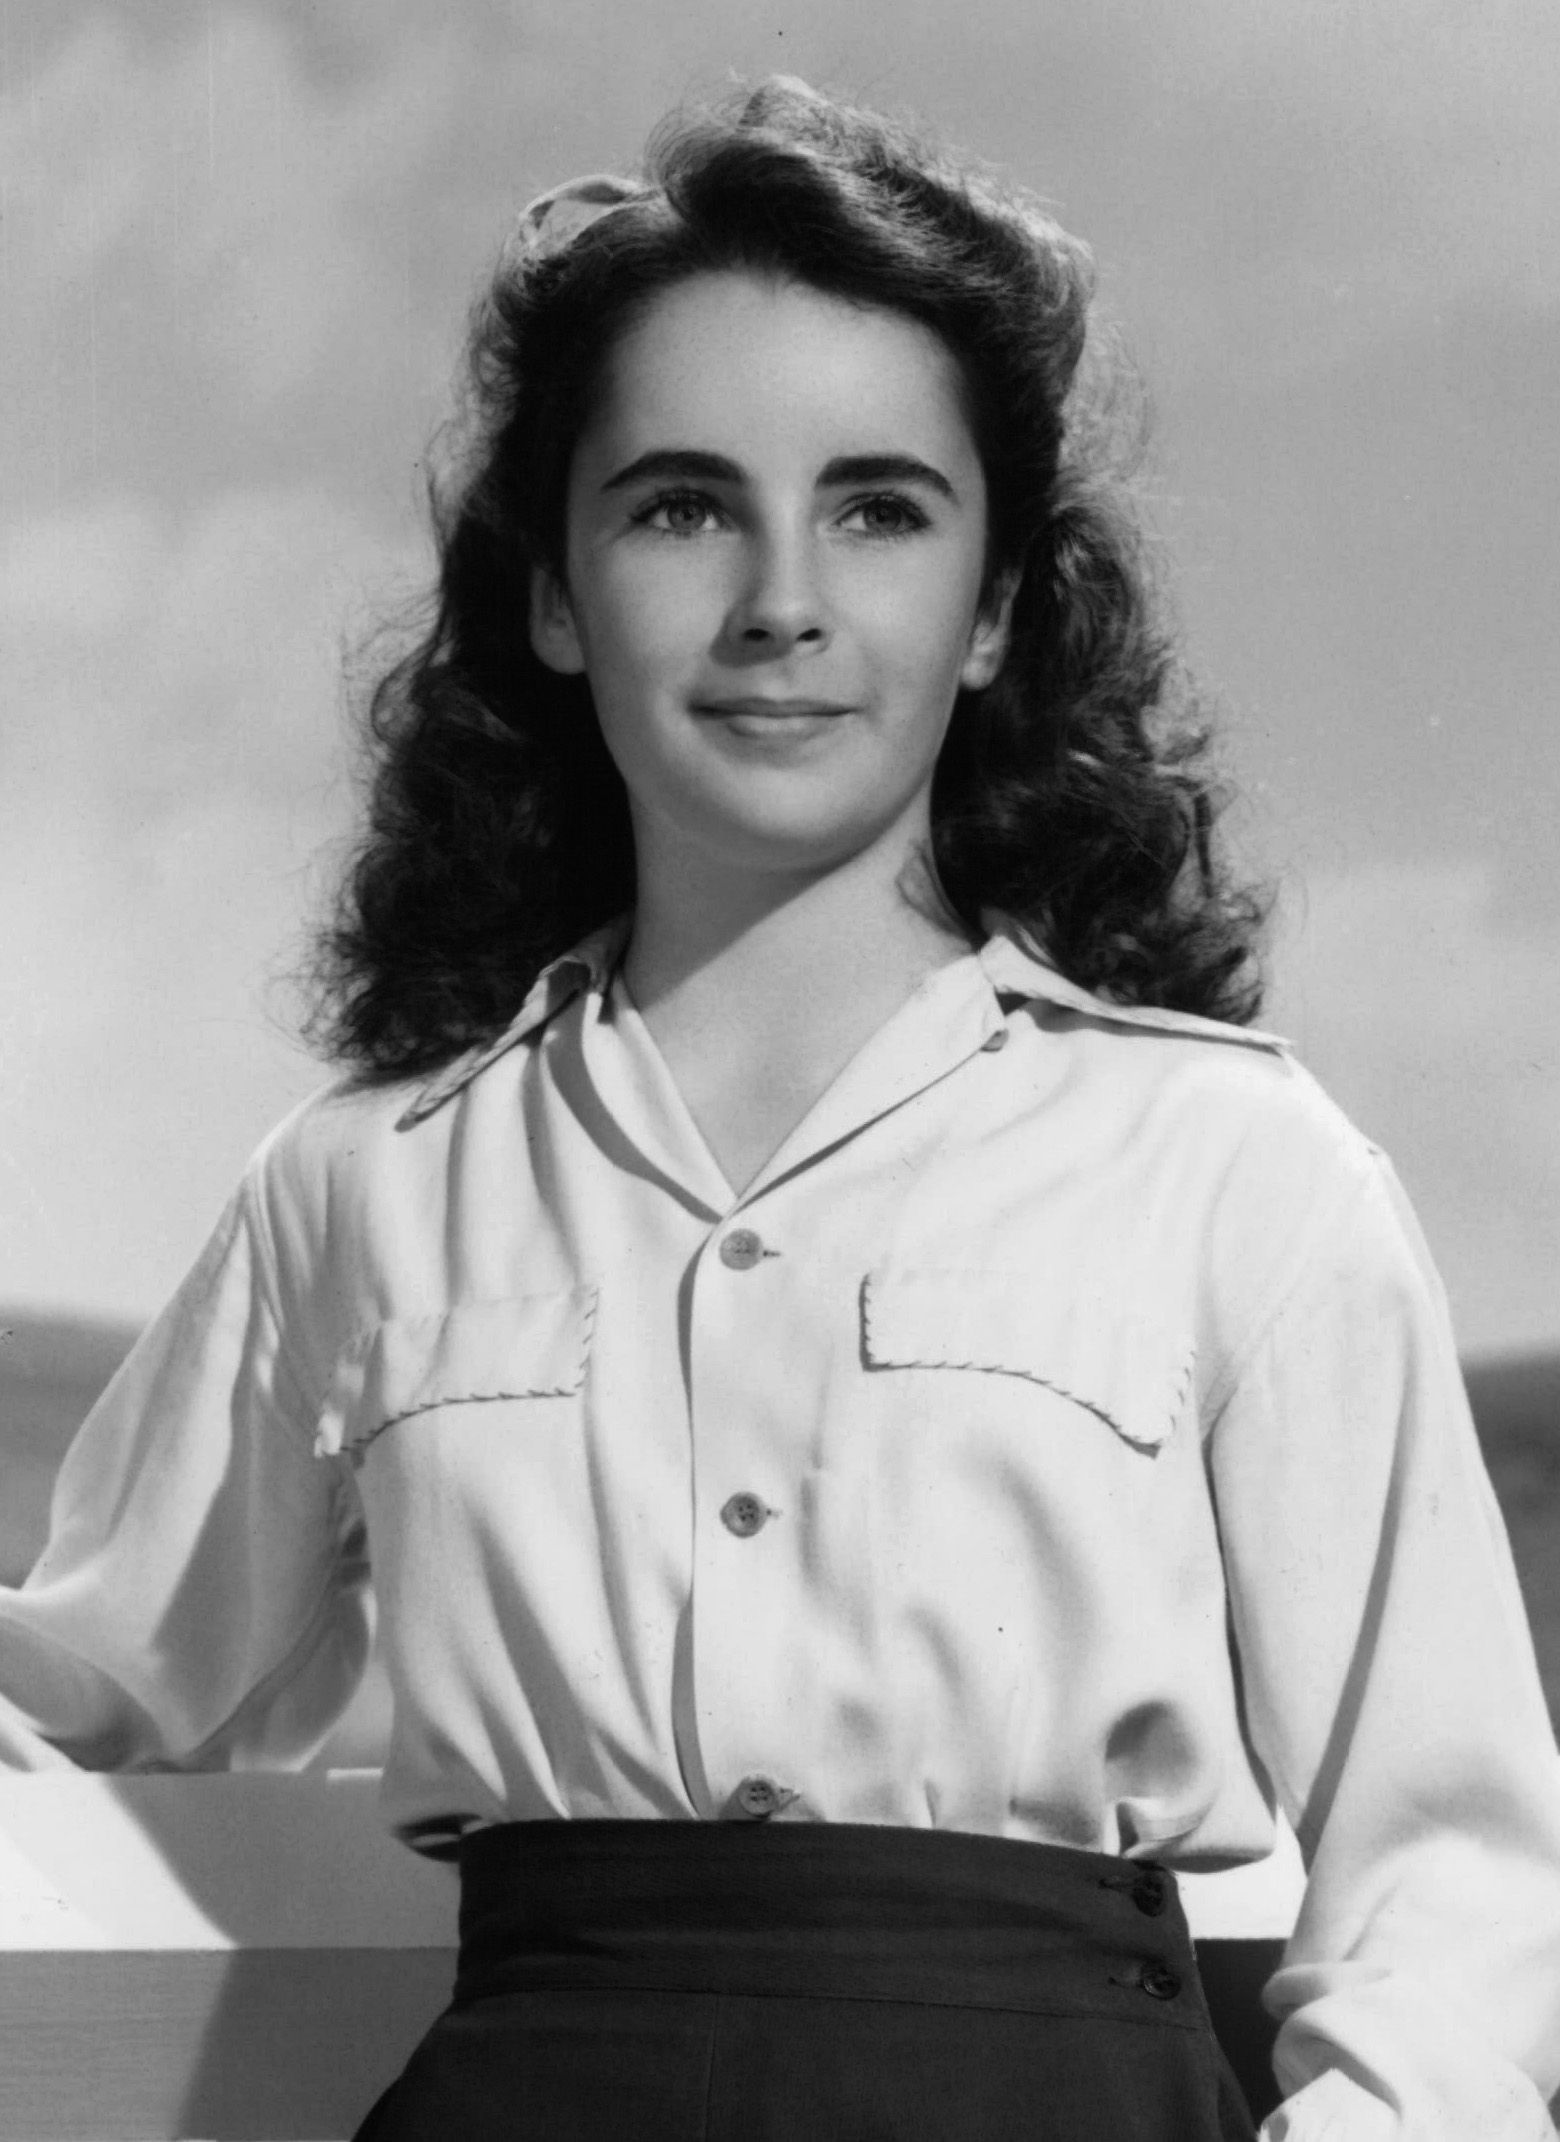 Image Result For Elizabeth Taylor Young Young Elizabeth Taylor Elizabeth Taylor Sophia Loren Images